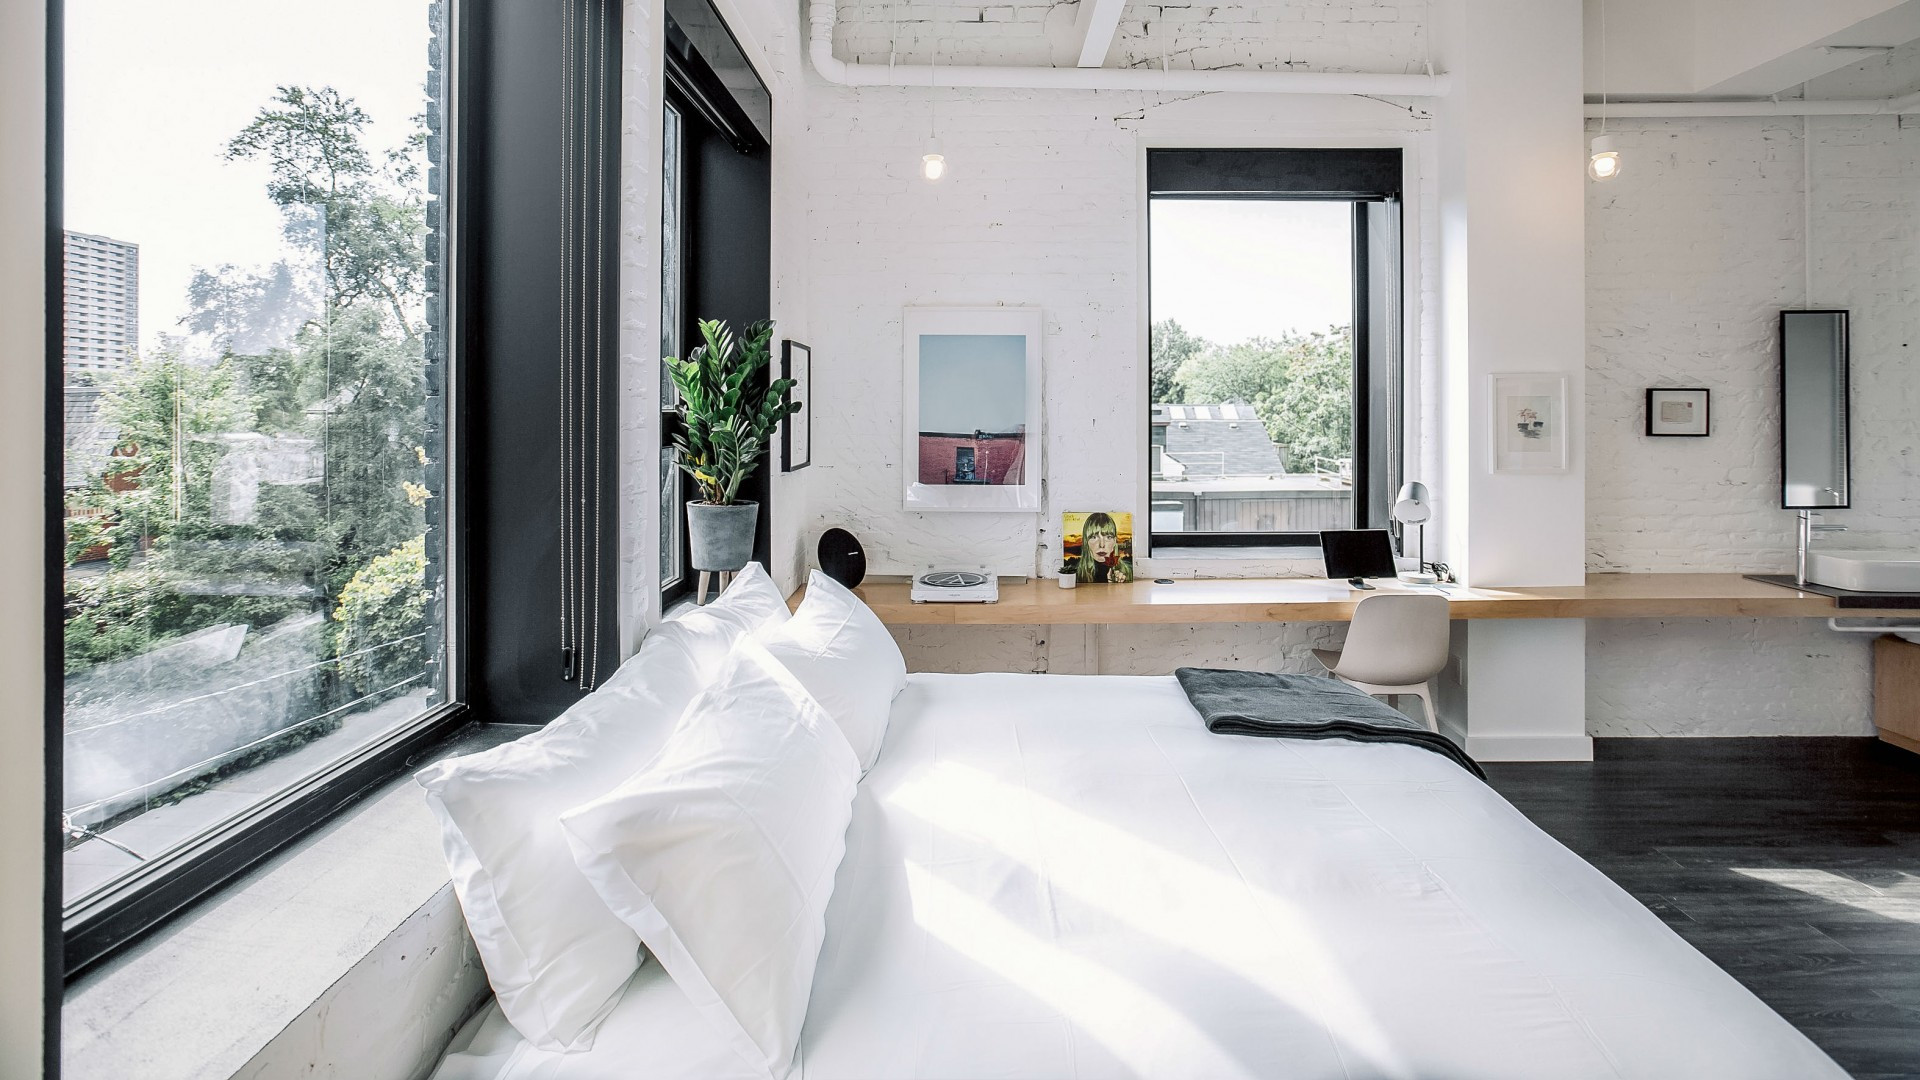 Best hotels Toronto staycation | The Annex Hotel one bedroom suite